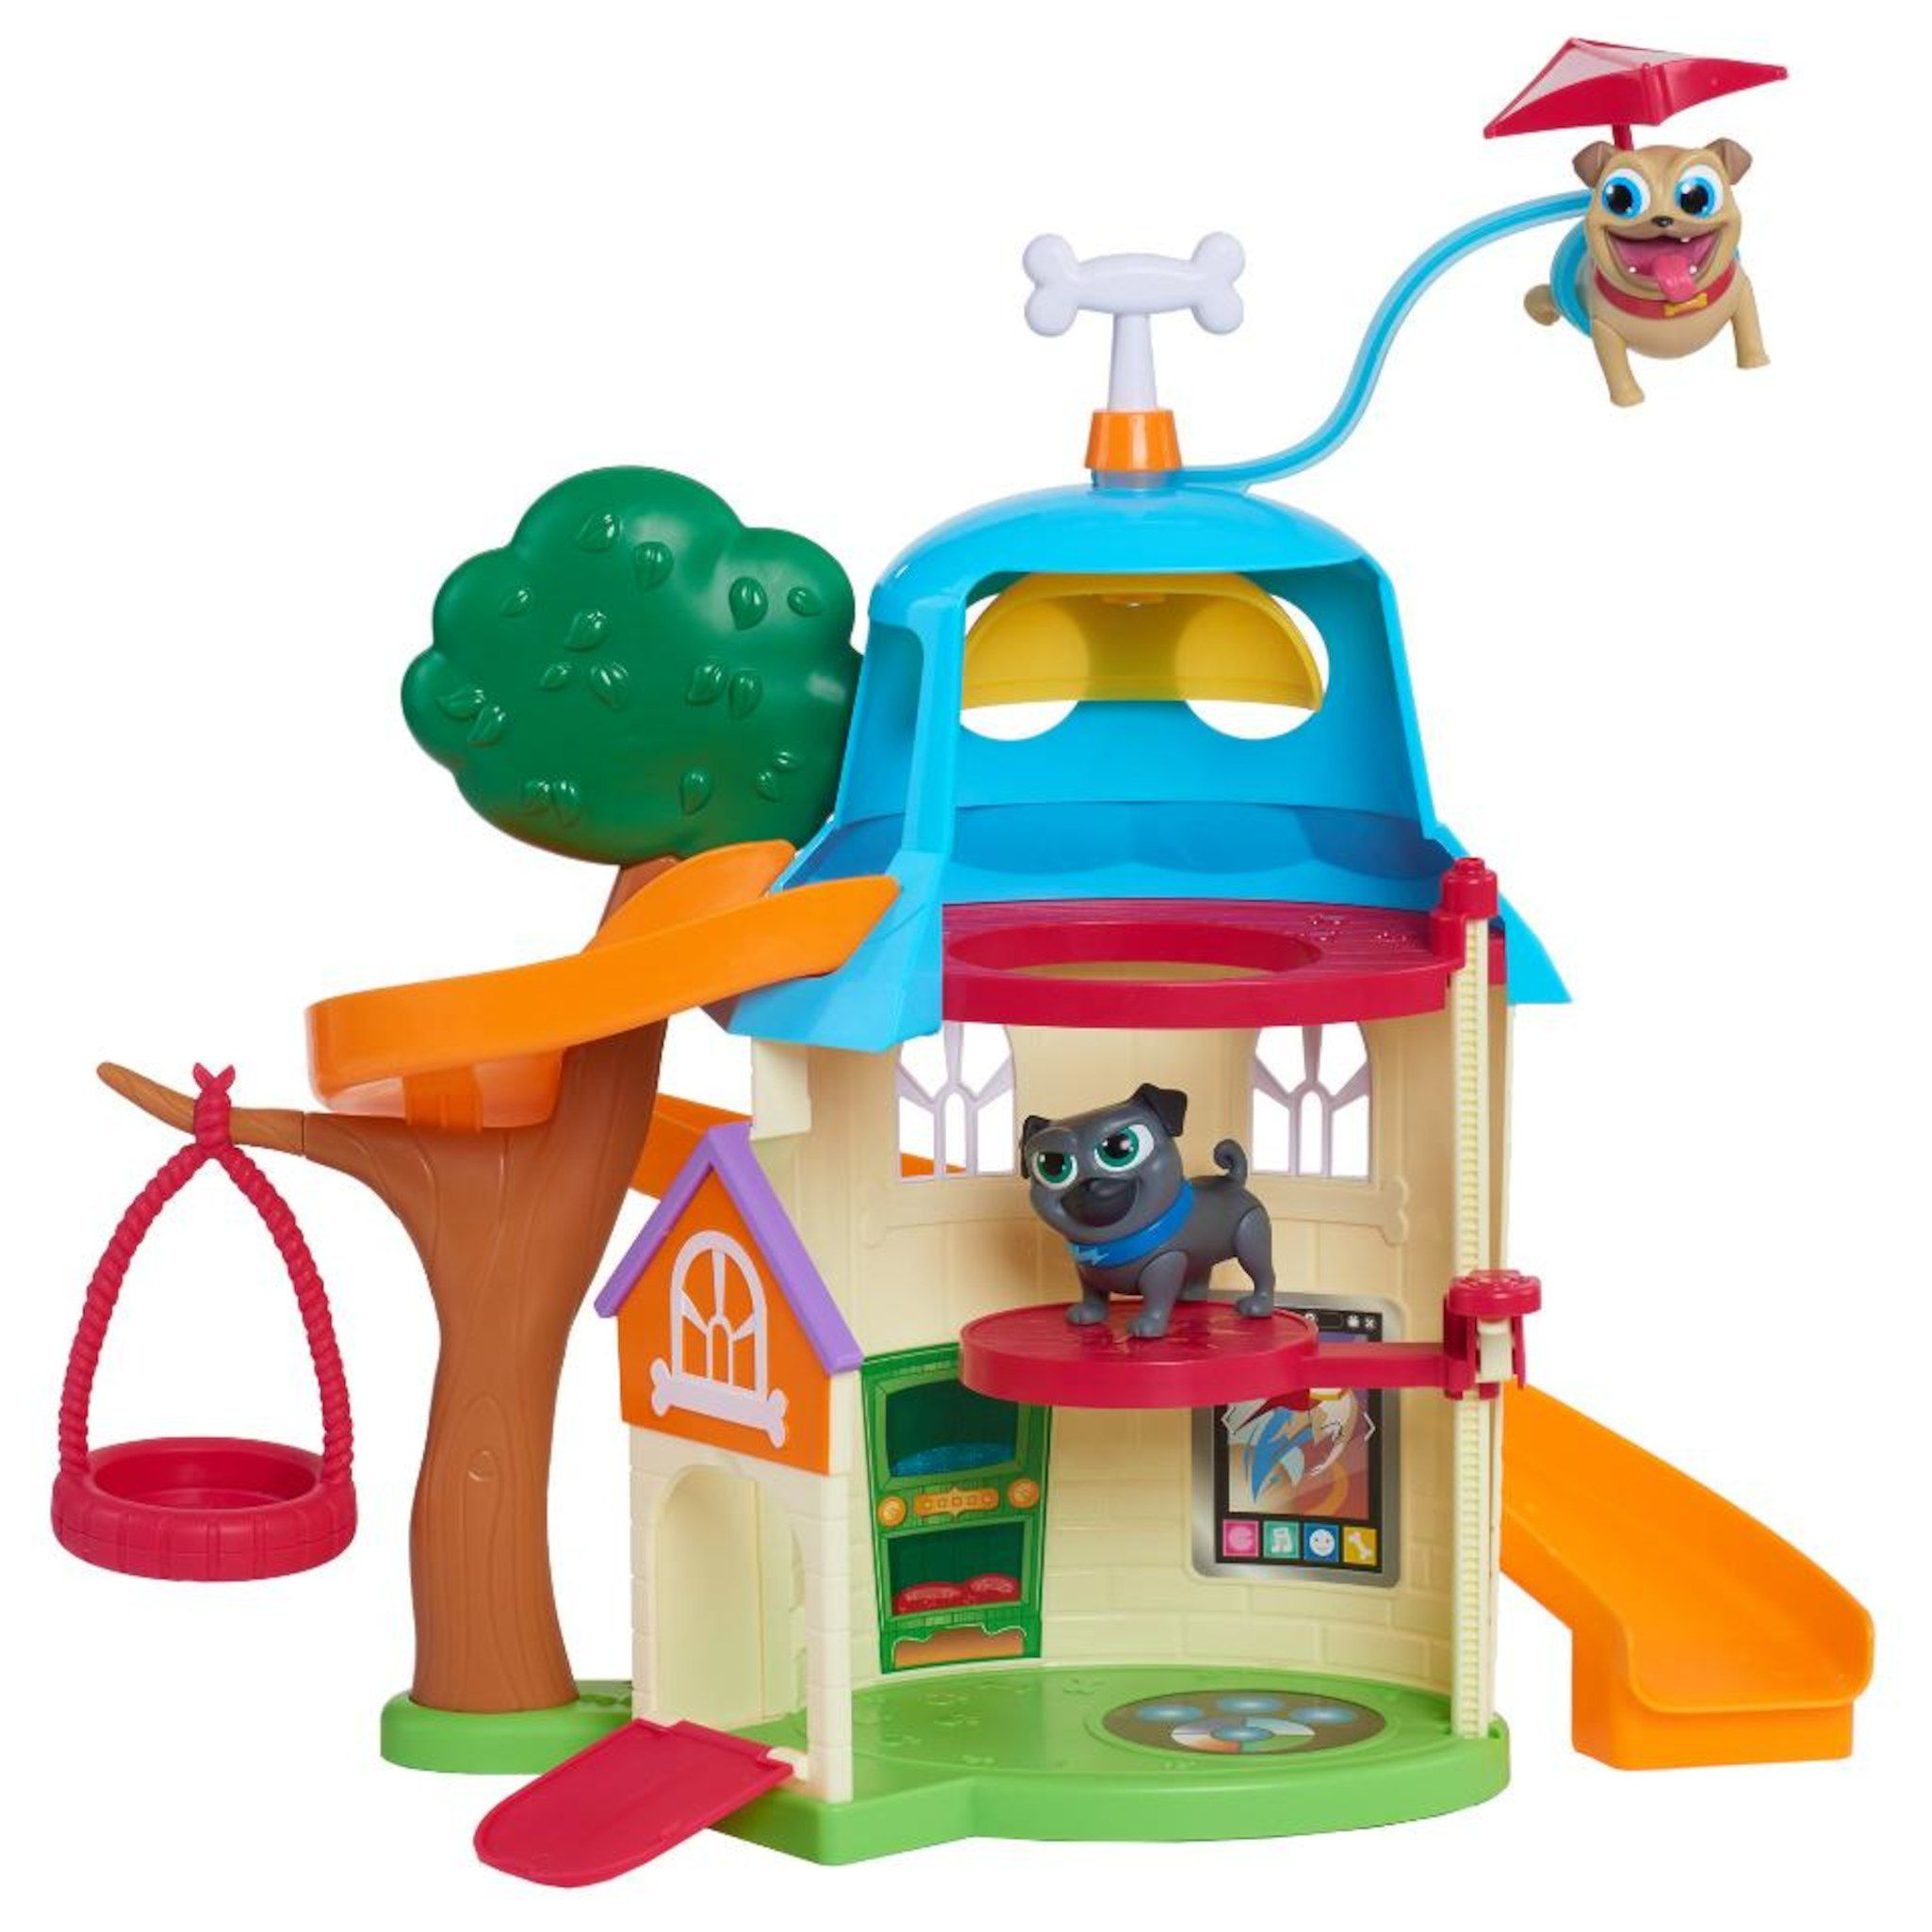 Disney Junior Puppy Dog Pals Doghouse Playset Dogs and